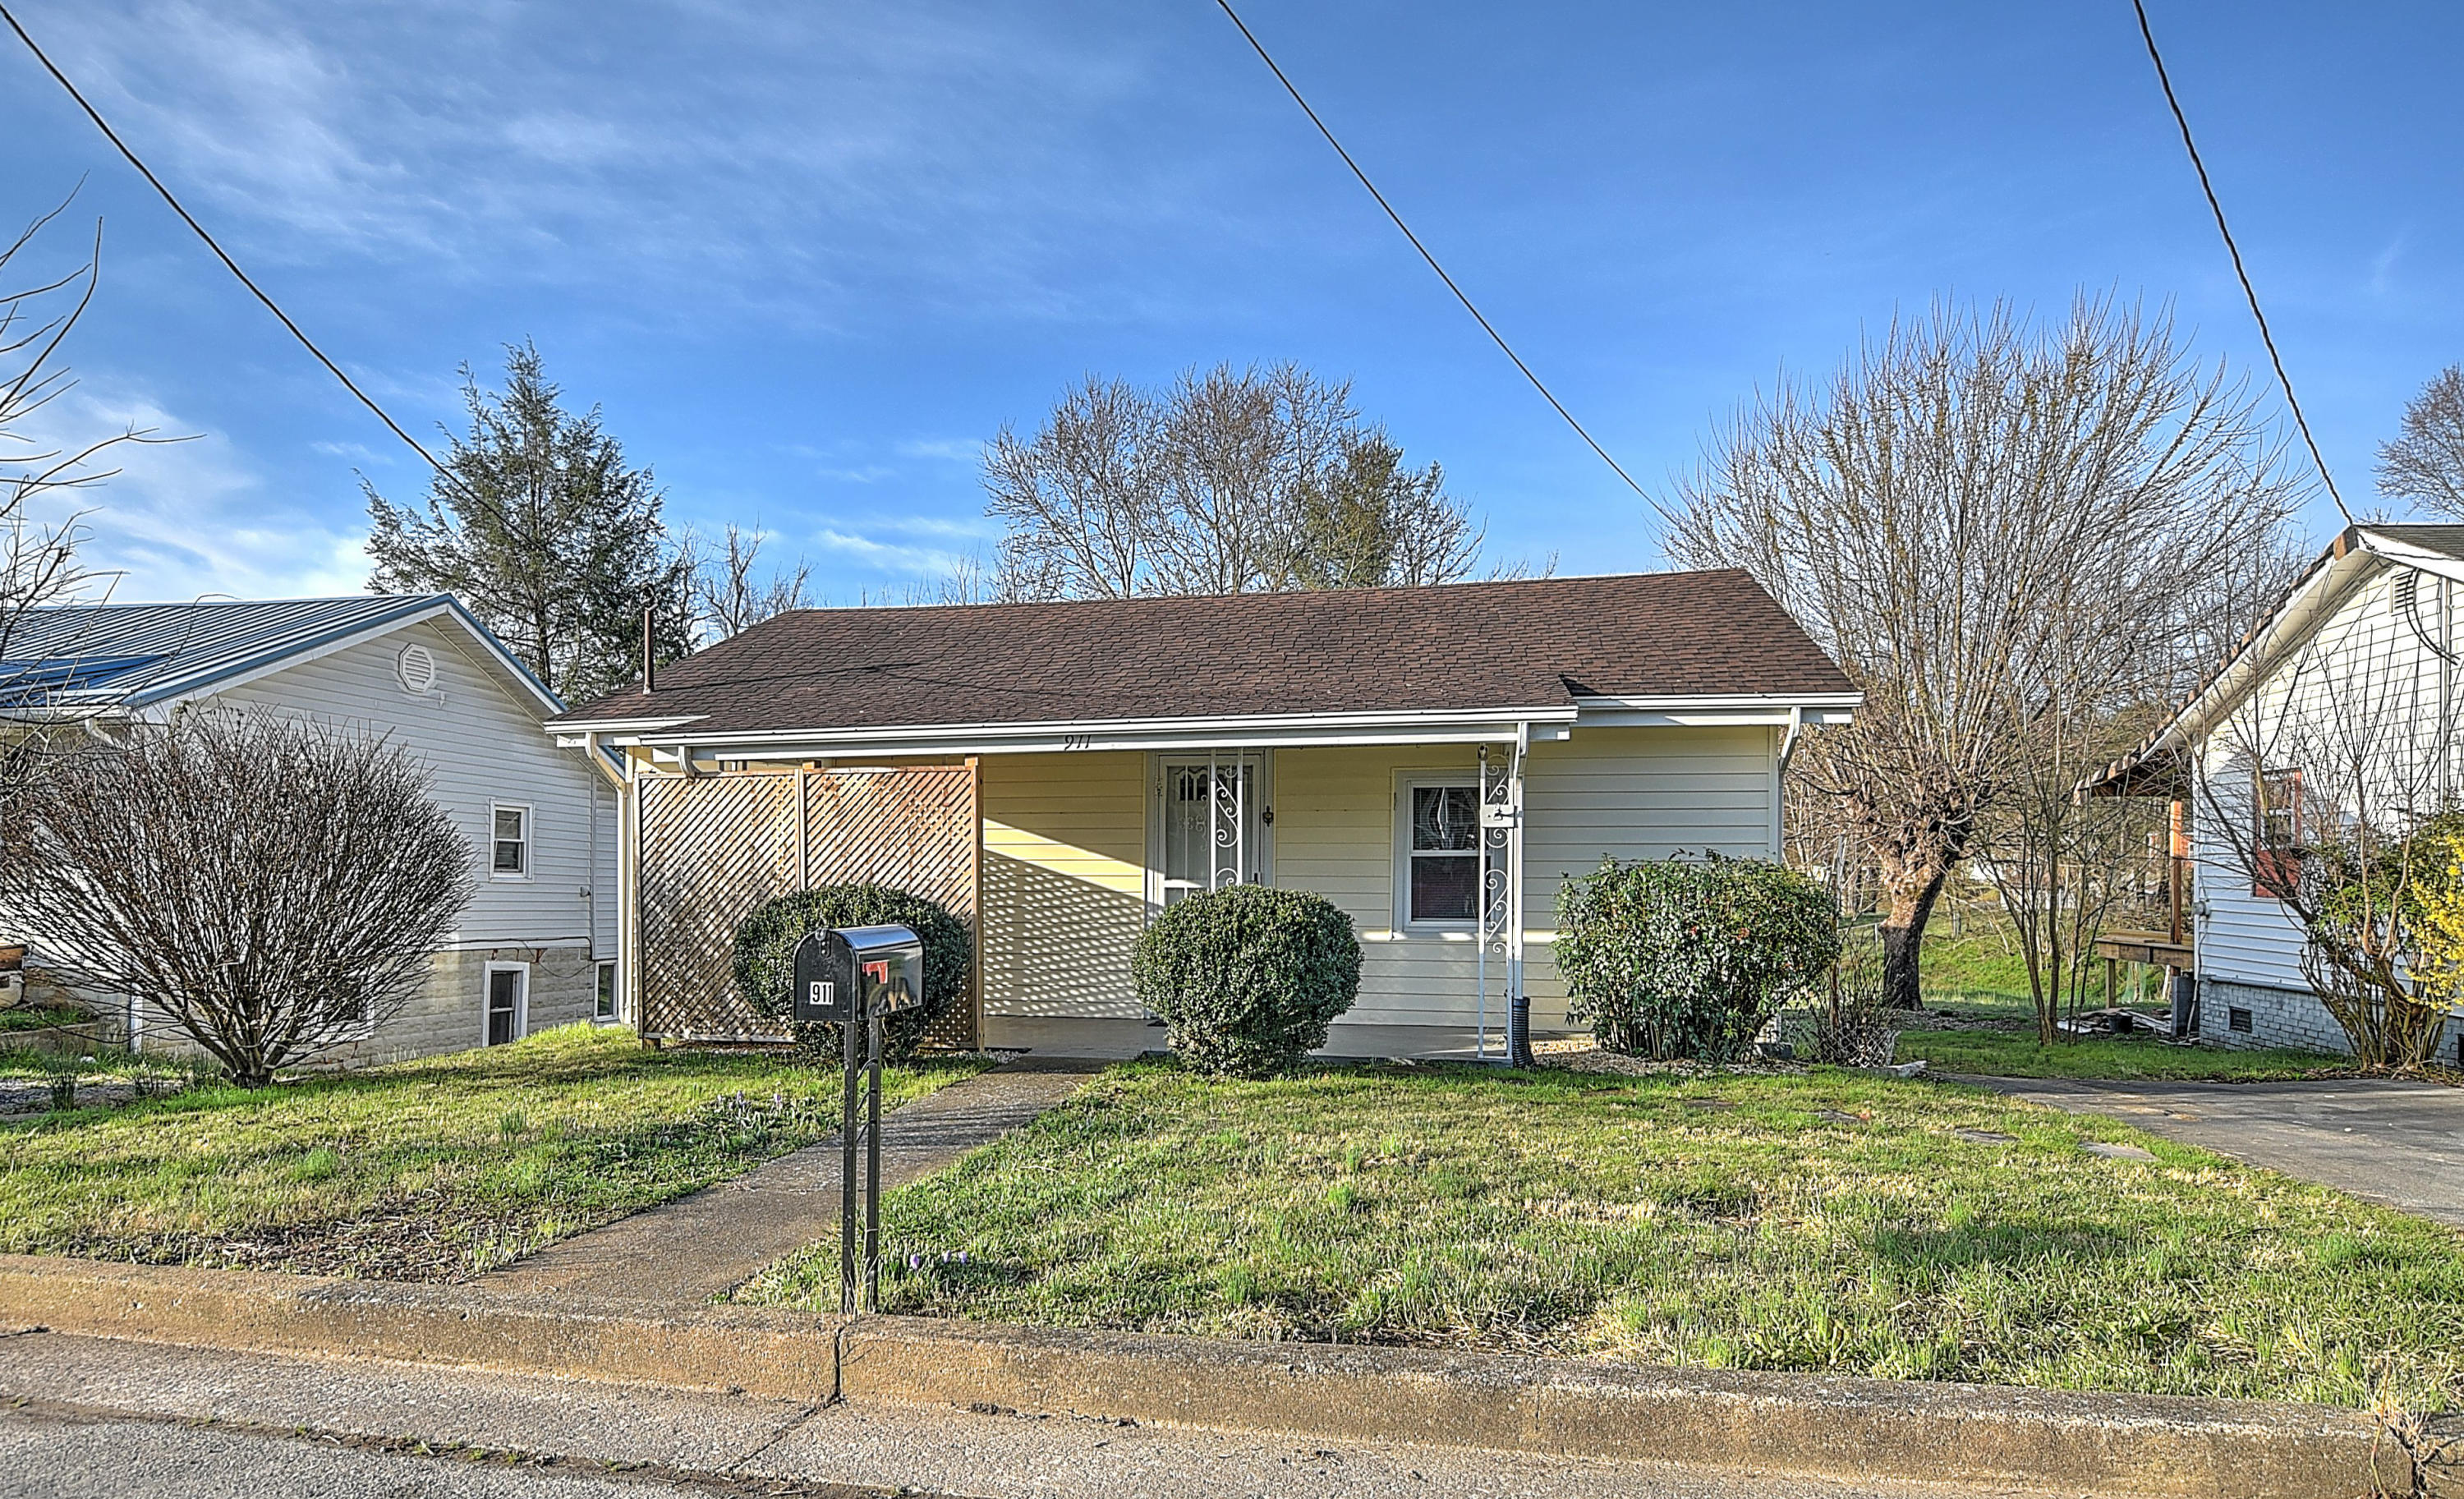 911 Hopson Street, Johnson City, Tennessee 37601, 3 Bedrooms Bedrooms, ,1 BathroomBathrooms,Single Family,For Sale,911 Hopson Street,9919775